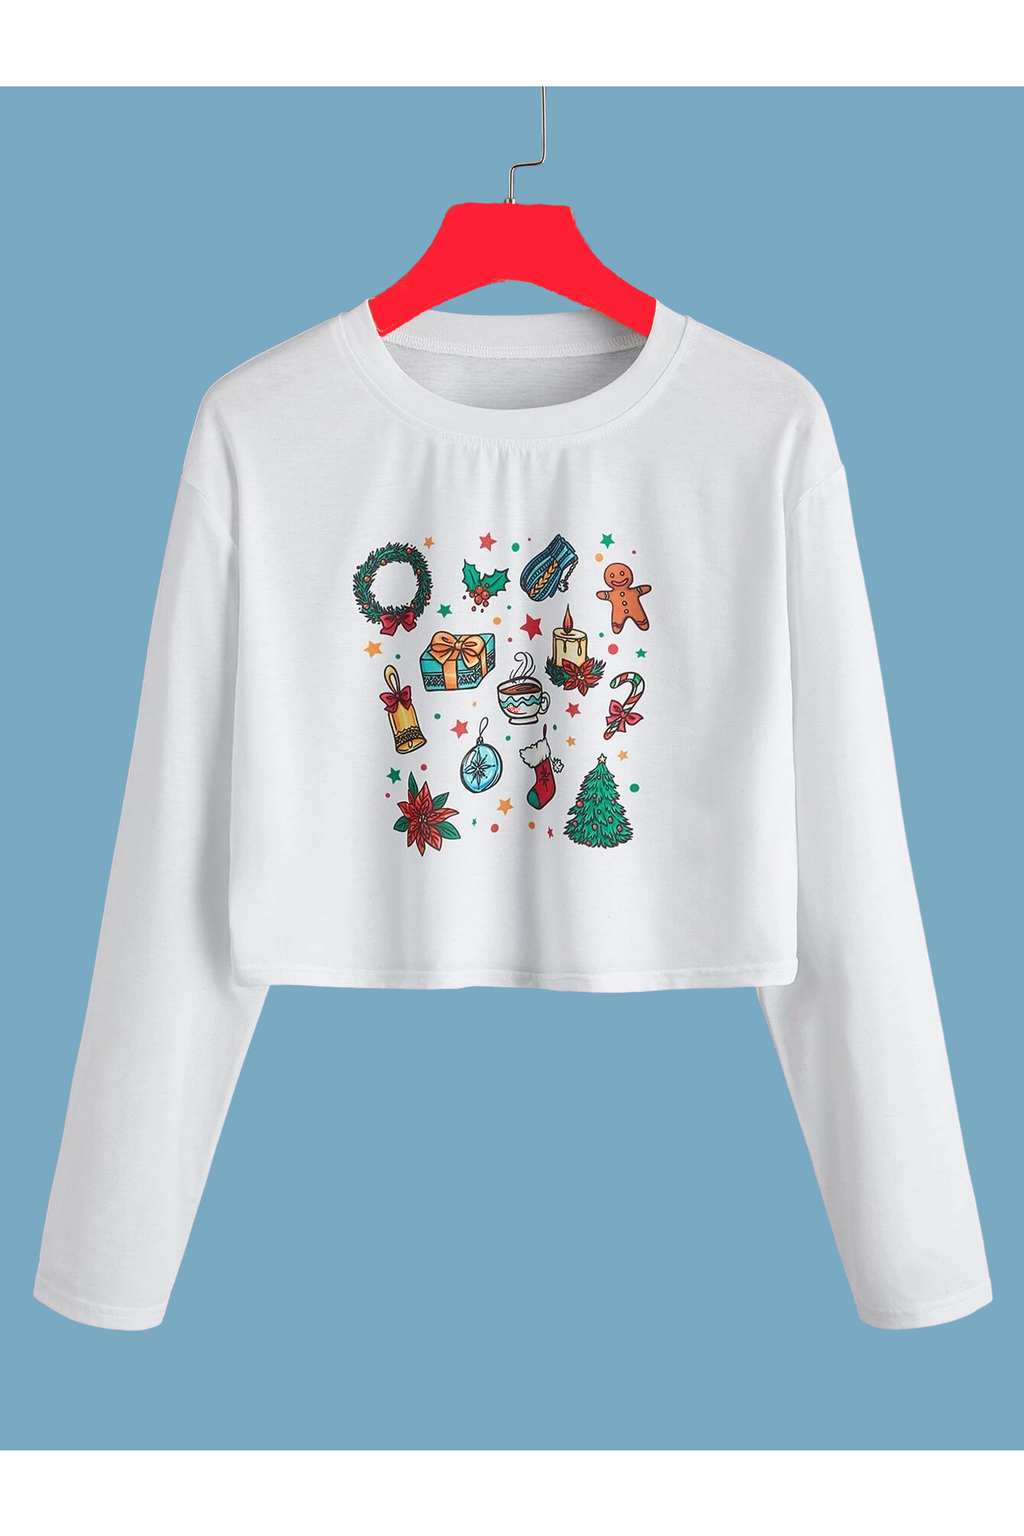 Wonderful Christmas Time Sweater